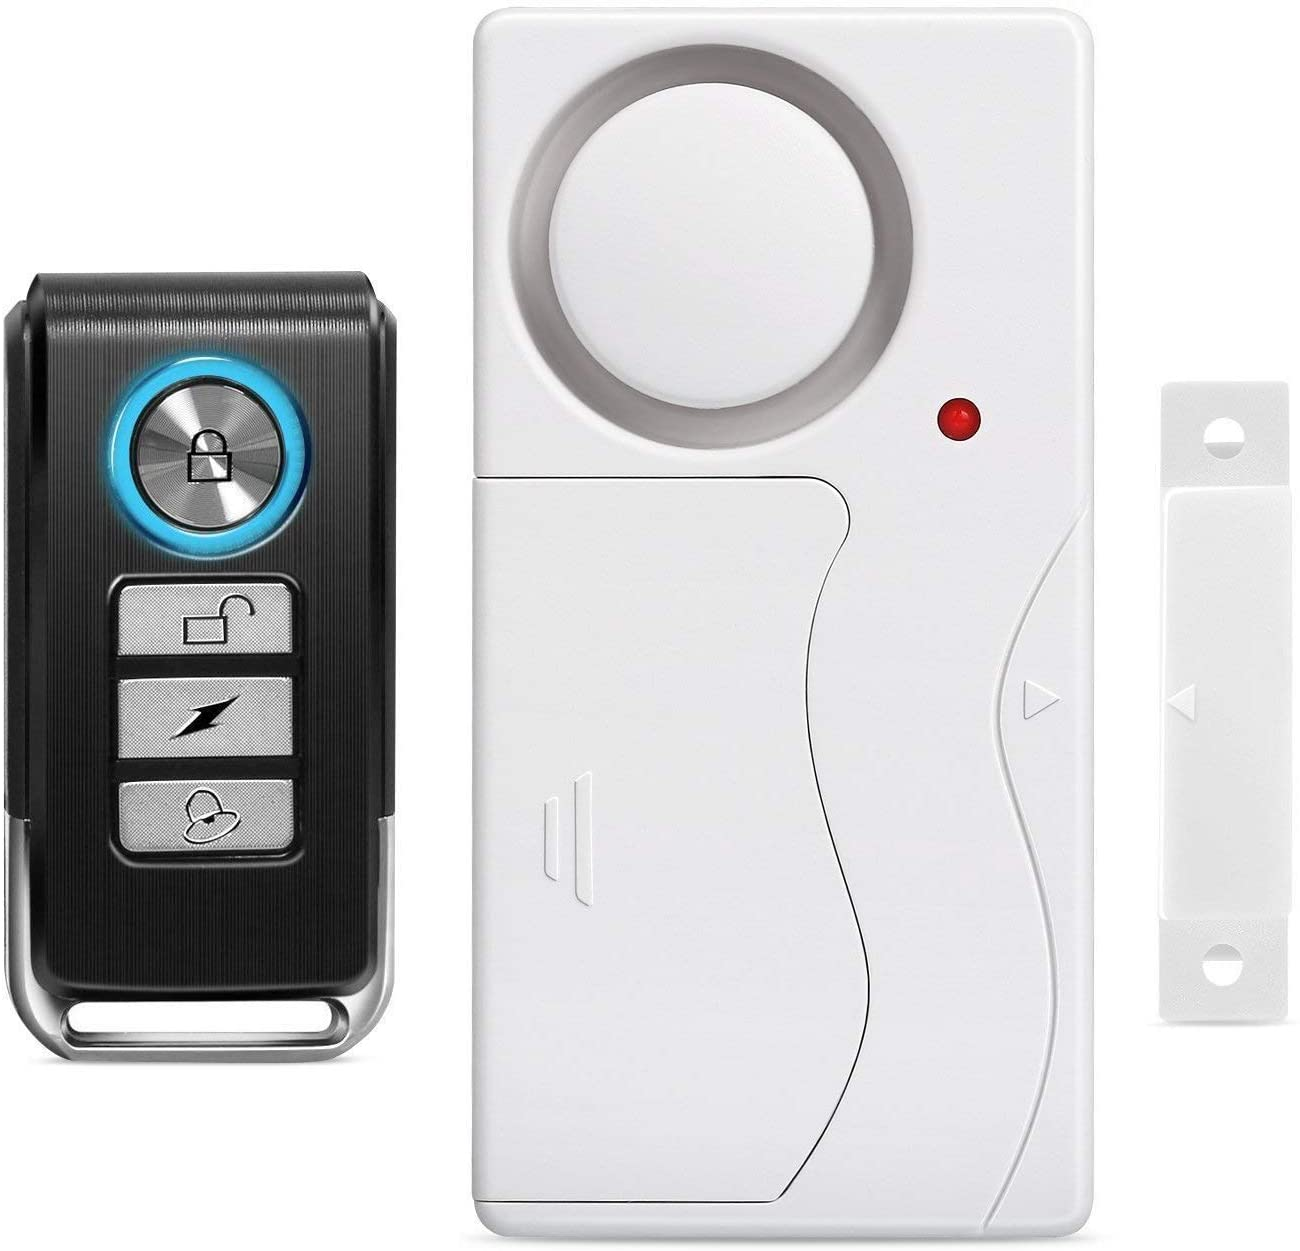 Wsdcam Wireless Anti-Theft Remote Control Window Alarms